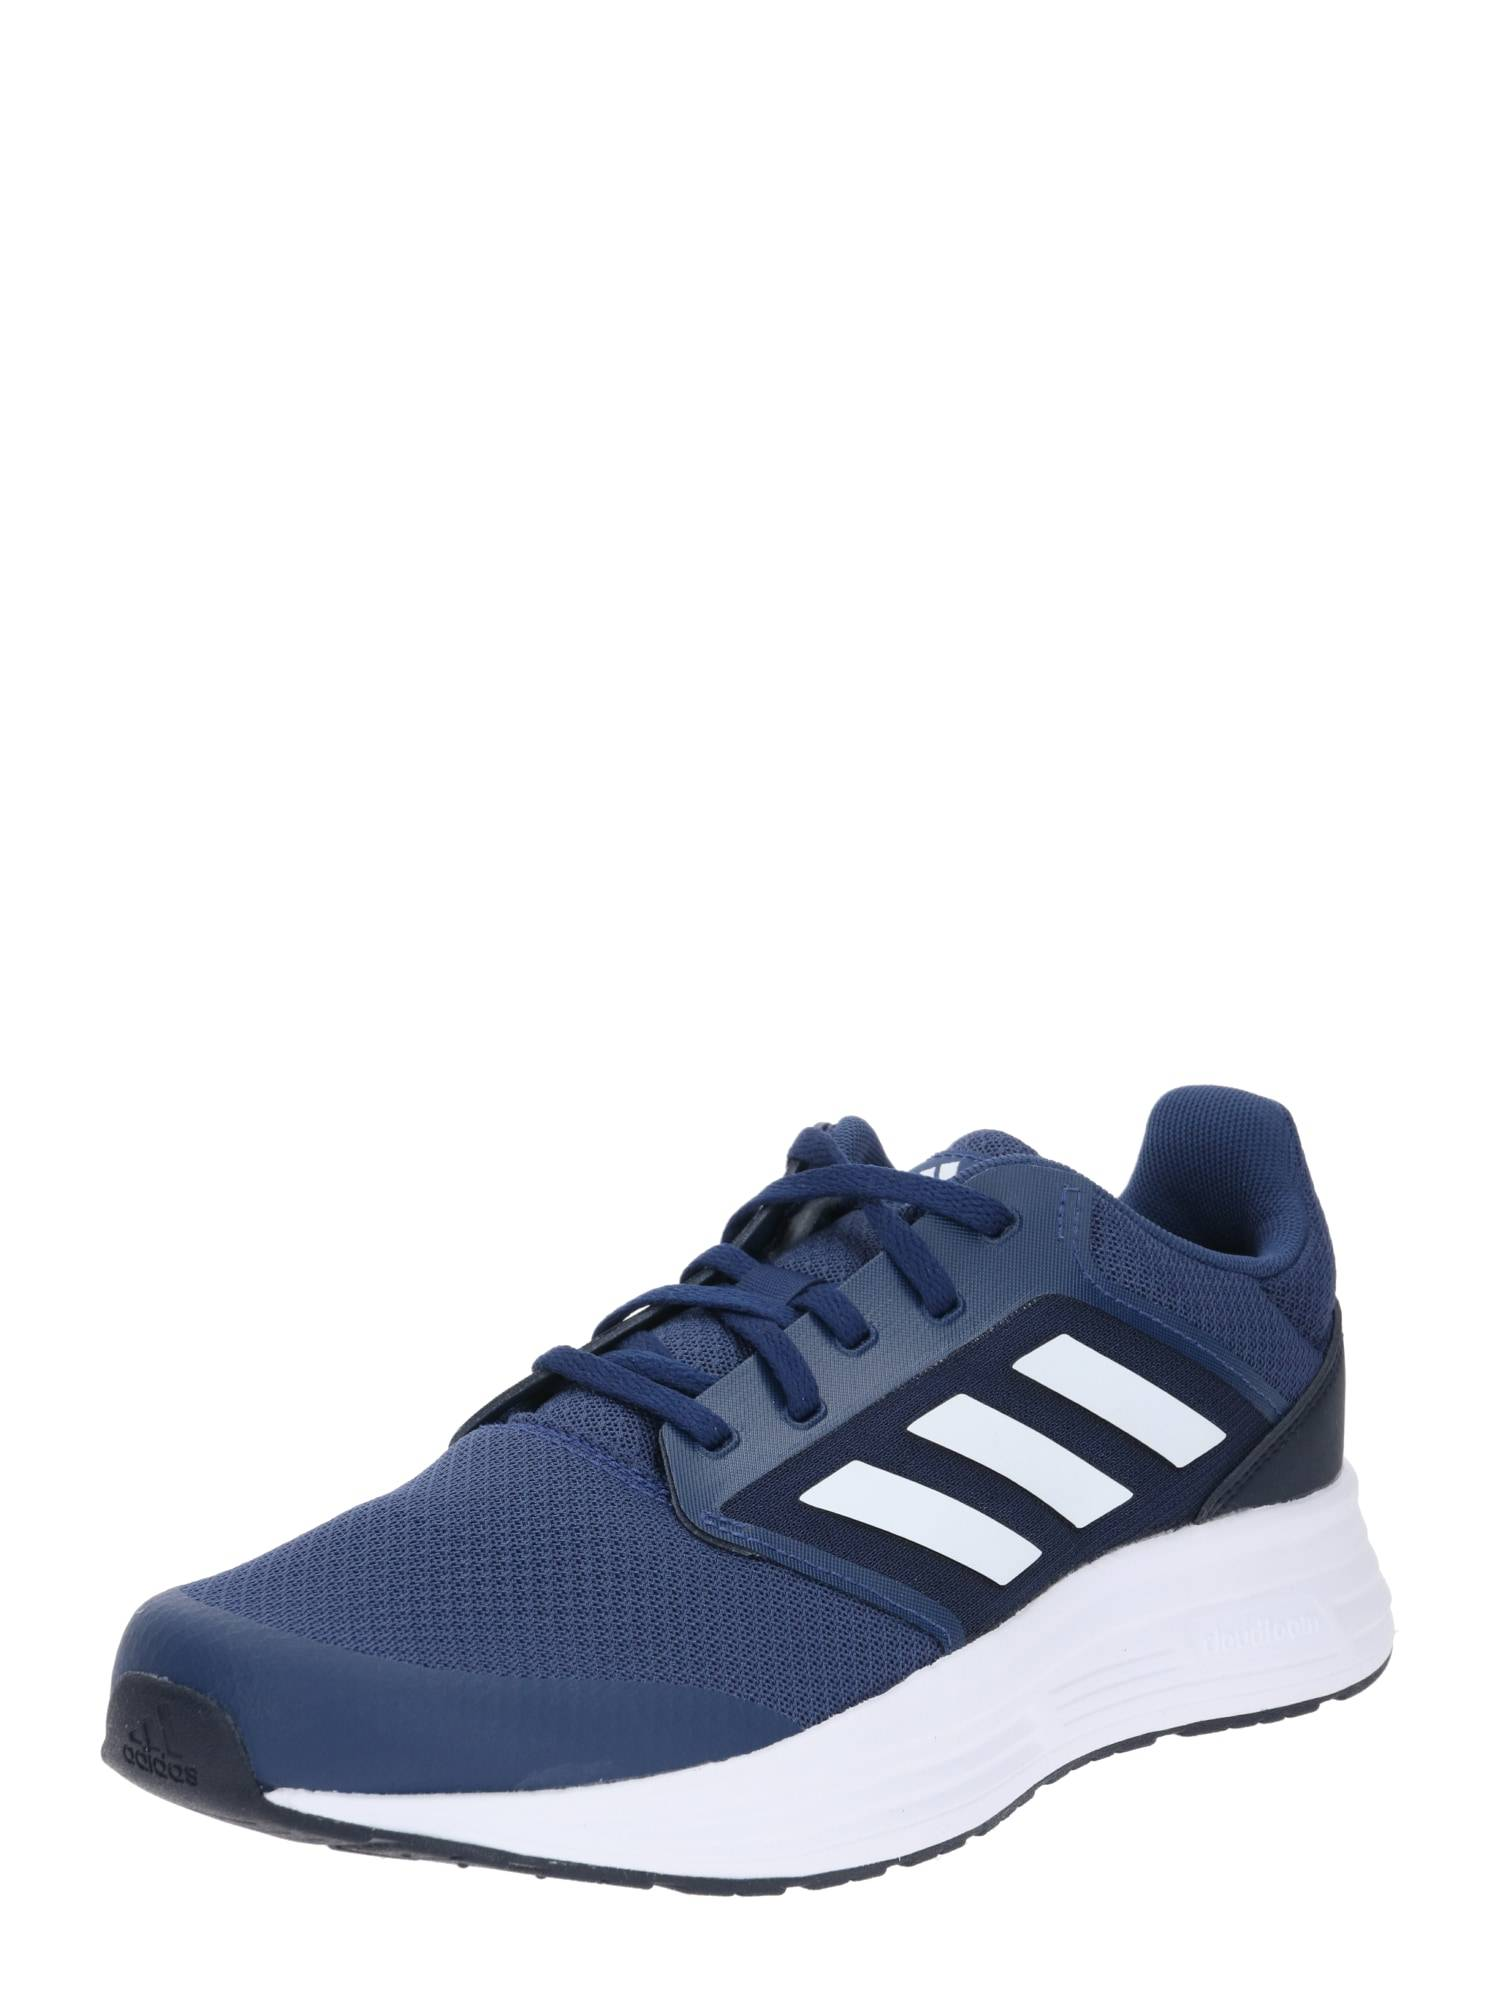 ADIDAS PERFORMANCE Chaussure de course 'Galaxy 5'  - Bleu - Taille: 43-43.5 - male